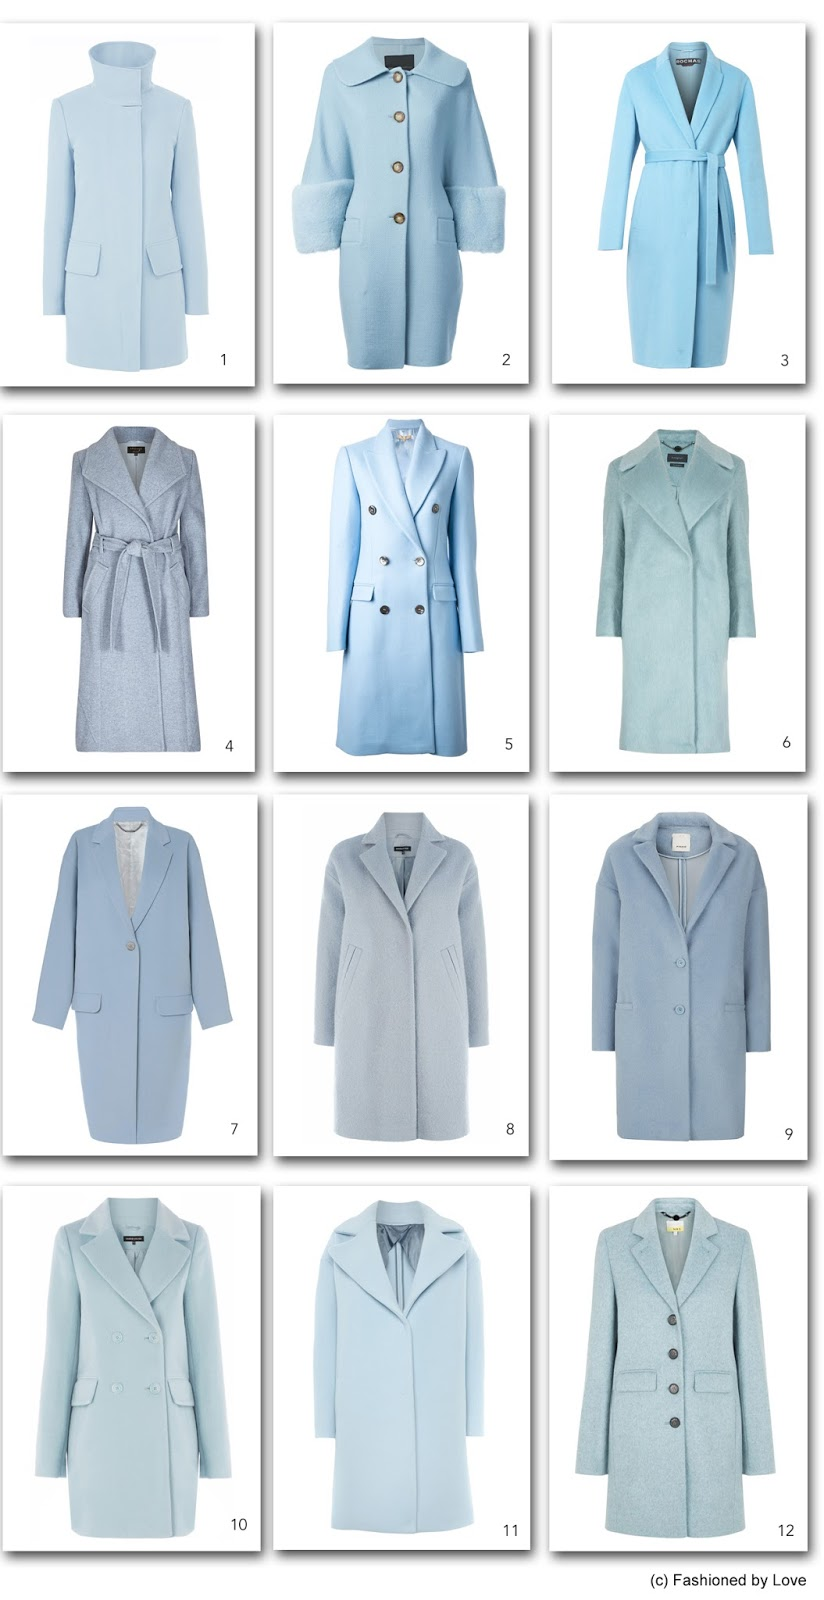 via fashioned by love | pastels in fall/winter 2014-2015 | trends | shopping | blue coats for winter 2014